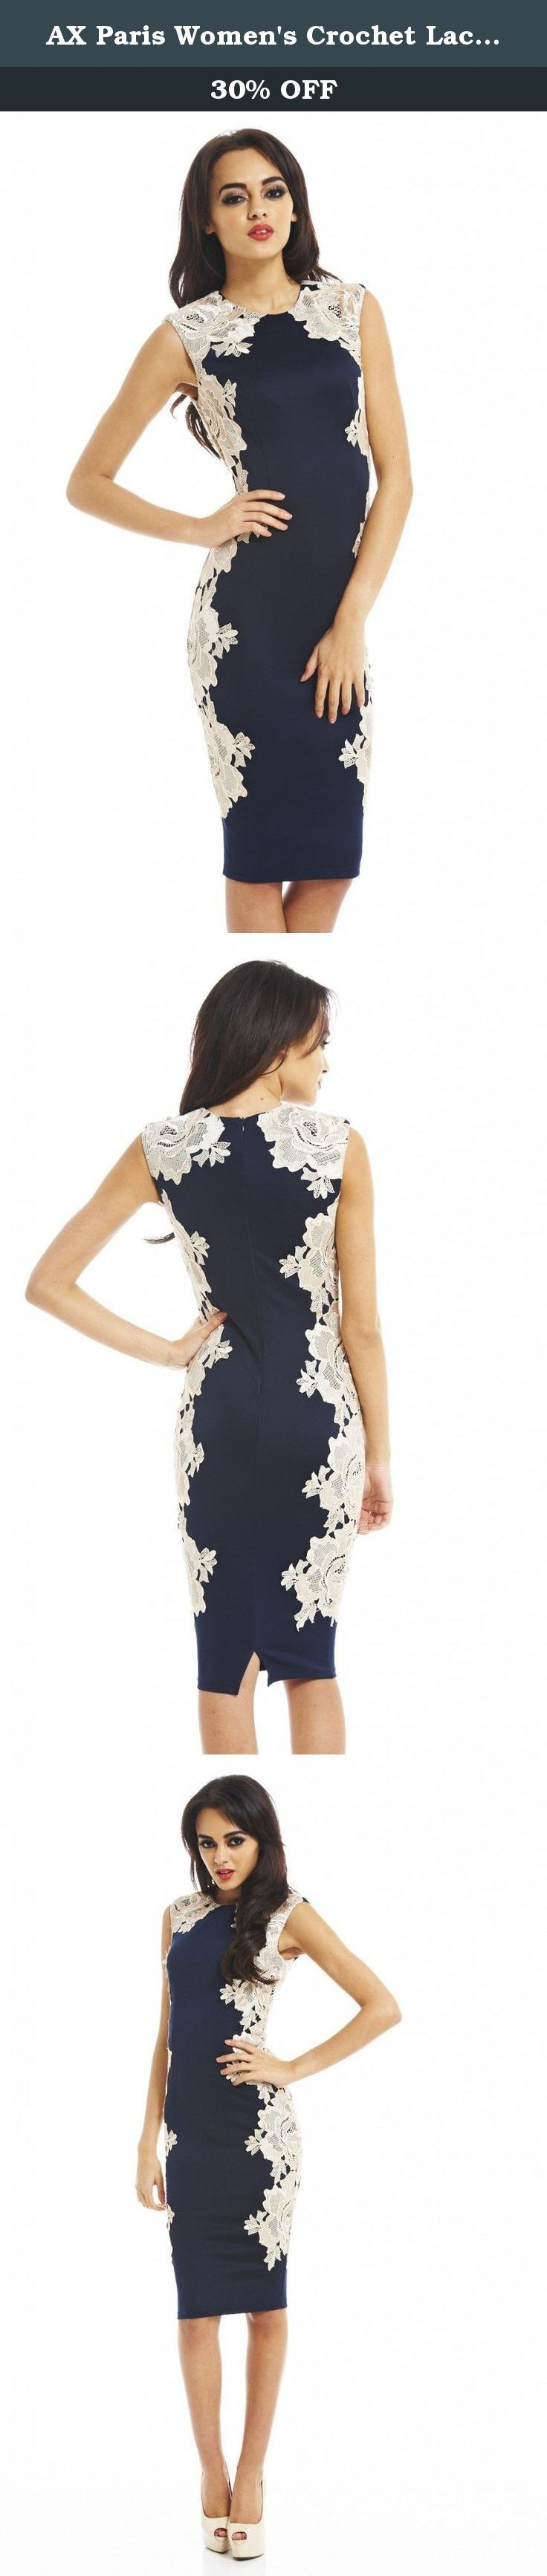 AX Paris Women's Crochet Lace Side Navy Midi Dress,Blue,6 US (10 UK). Glam up with this side lace contrast and scuba fabric dress slip on this classic evening dress and make heads turn. This trend stopping midi dress is totally sexy with just the right amount of sophistication thrown in too with and back zip fastening. We love the lace detail runnign down one side. Chic sophisticated and classic that's the way forward this season!.